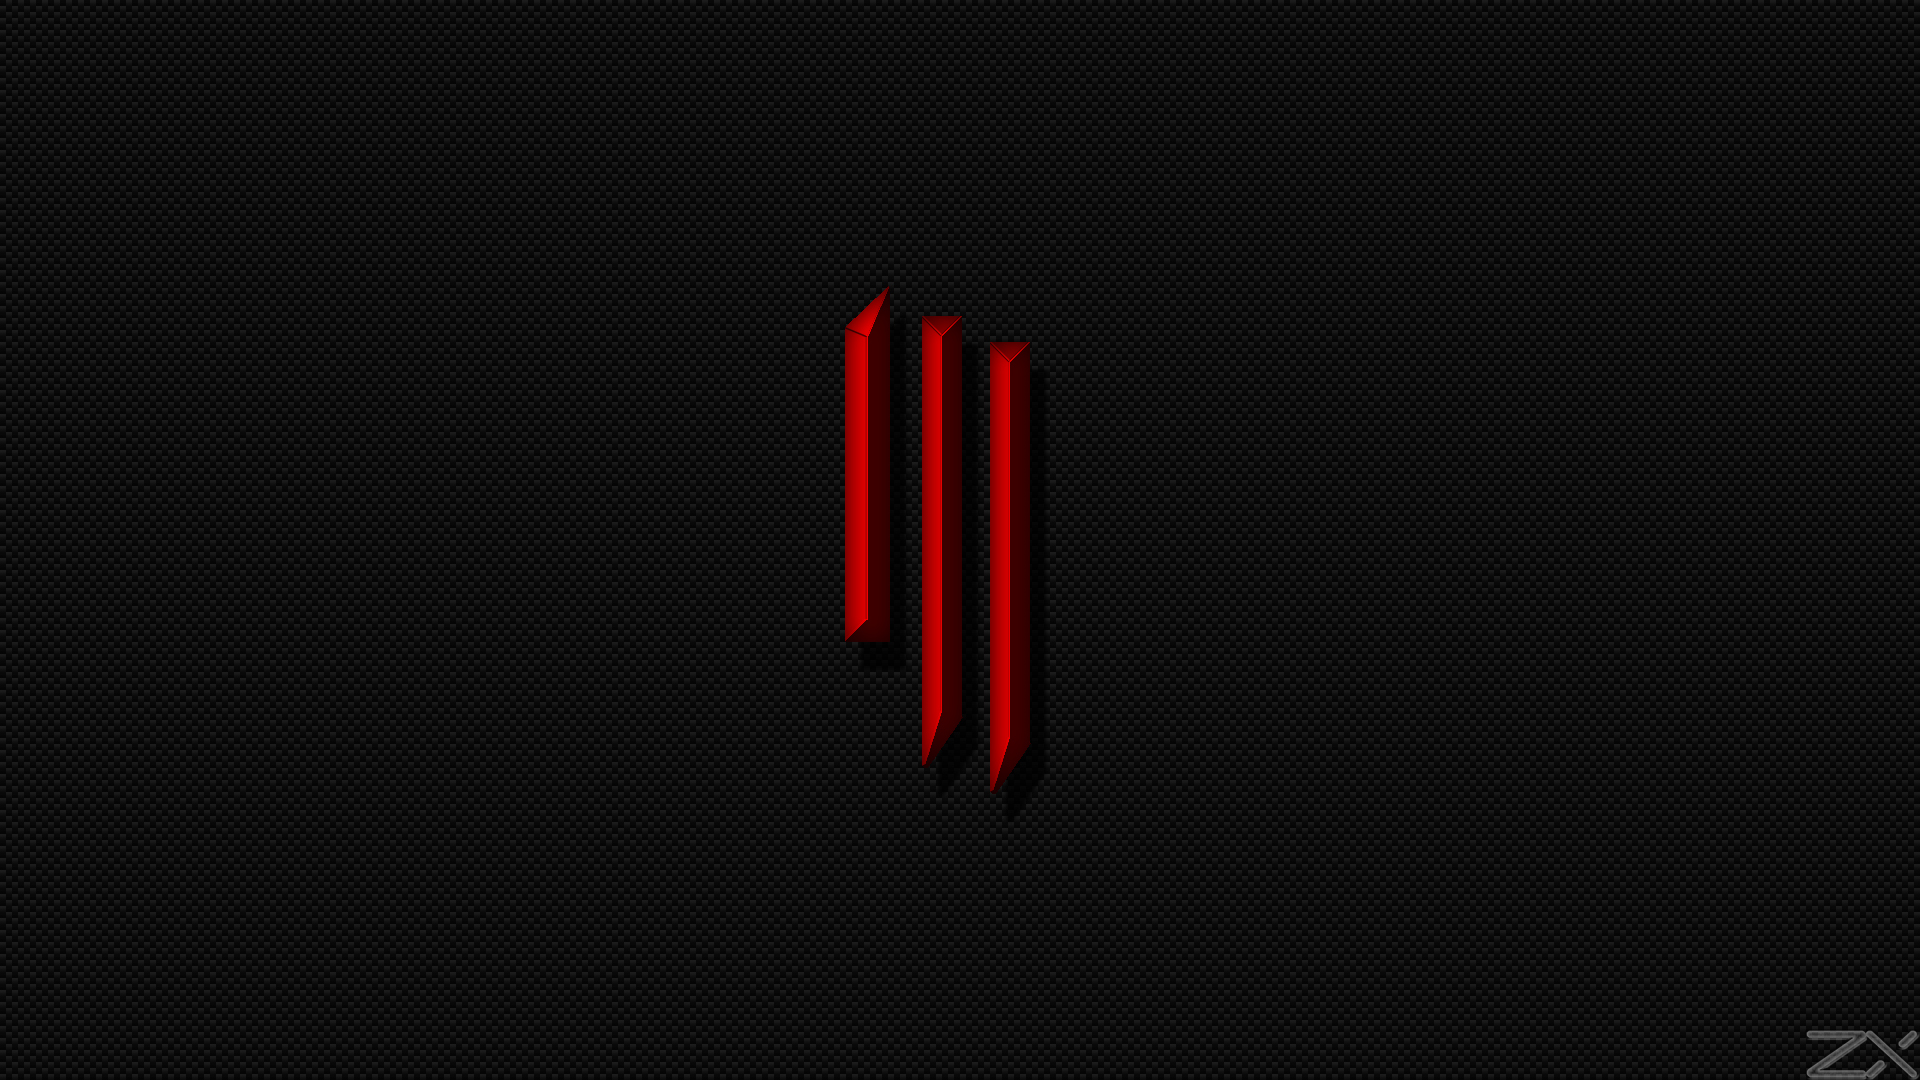 Skrillex Logo Wallpaper Posted By Michelle Tremblay